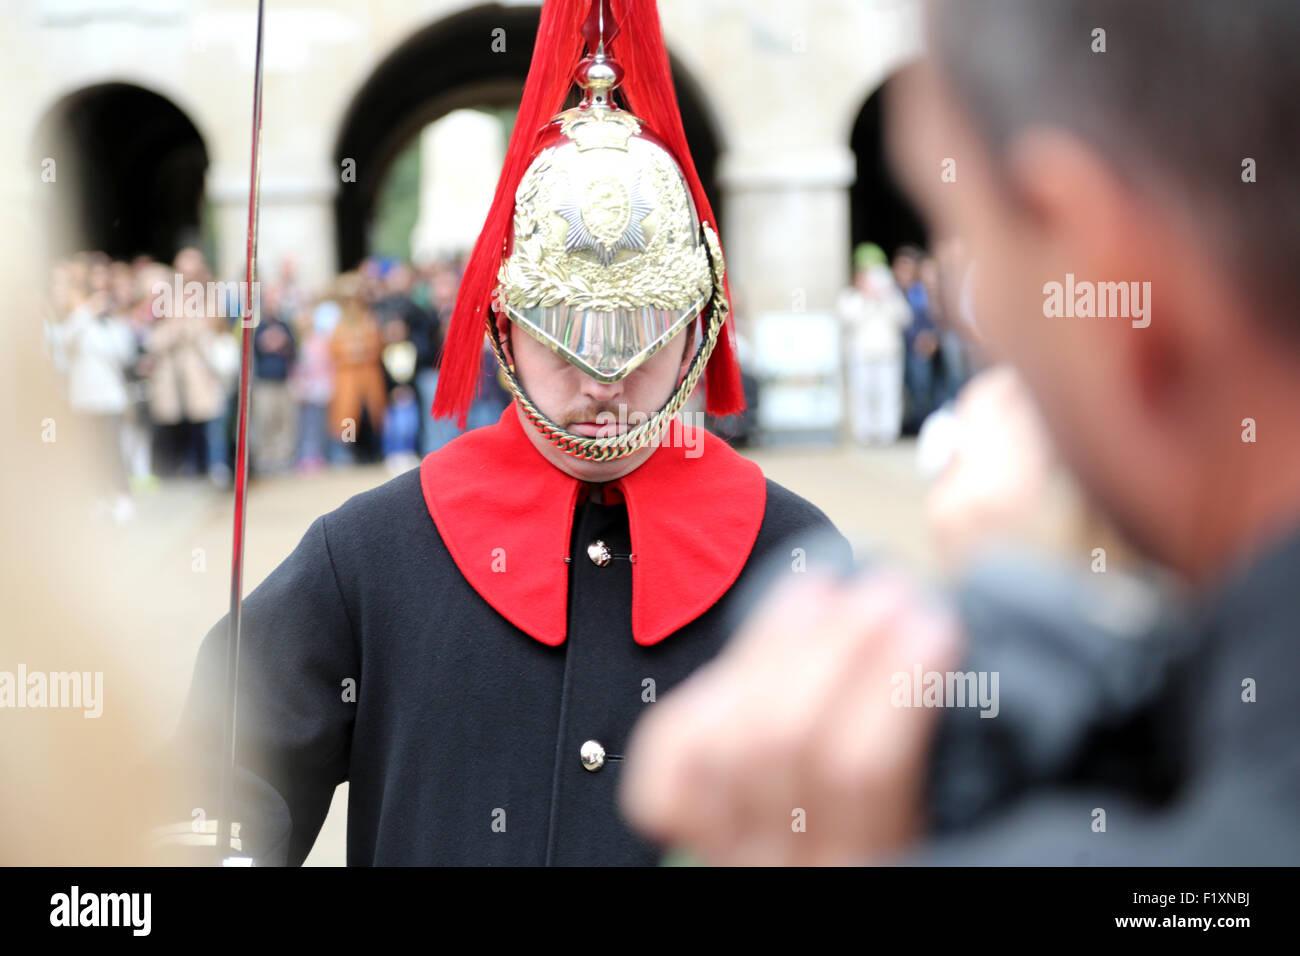 A member of the Queens lifeguard during the changing of the guard at Horse guards Parade Stock Photo